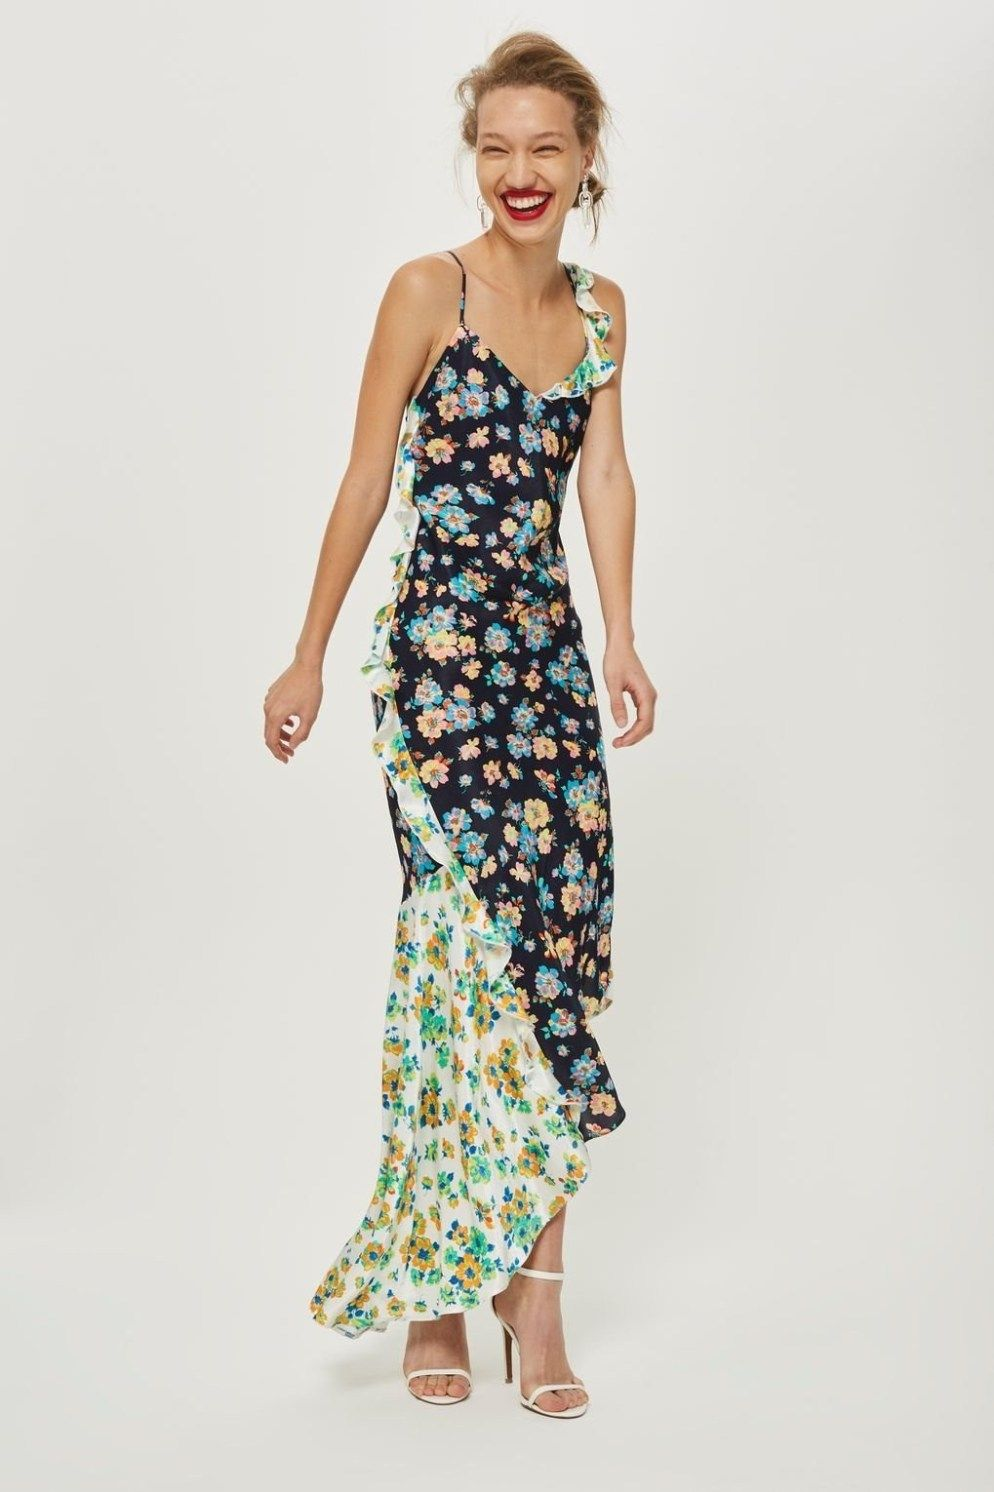 12 Long Floral Dresses To Wear This Summer Society19 Uk Floral Dresses Long Best Wedding Guest Dresses Dresses